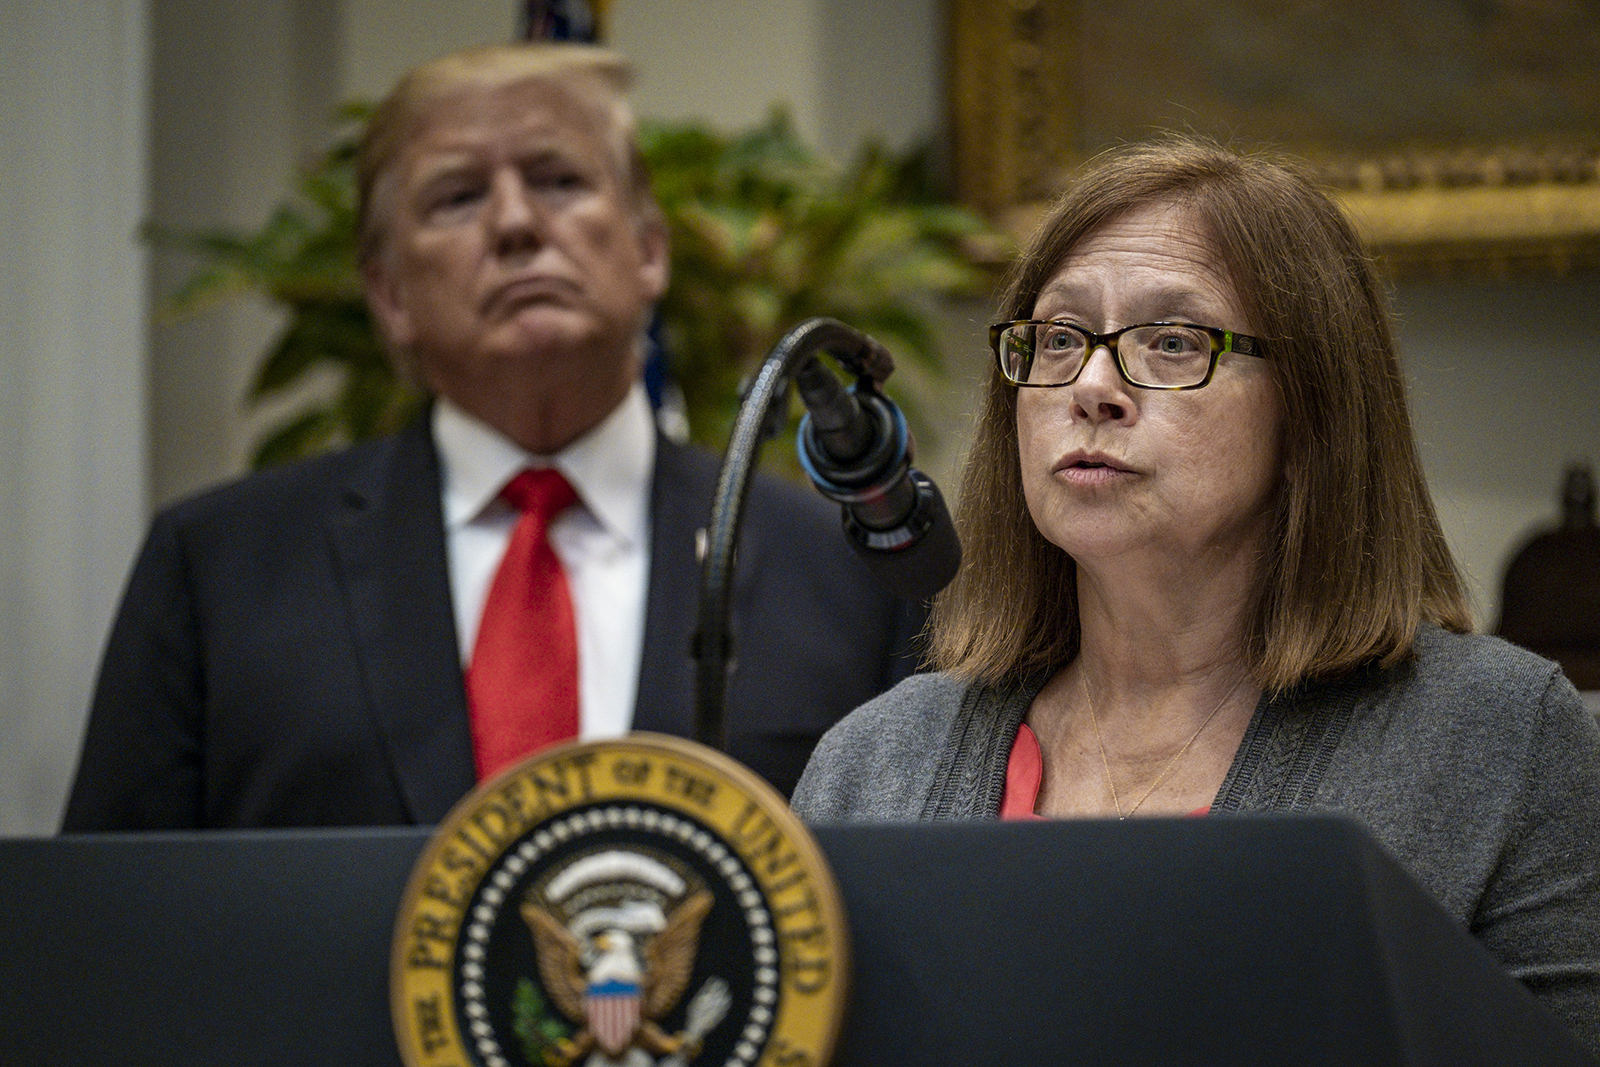 Elinore McCance-Katz, the assistant secretary for Mental Health and Substance Use, speaks while President Donald Trump, left, listens in the Roosevelt Room of the White House in Washington, DC, on September 4, 2019.